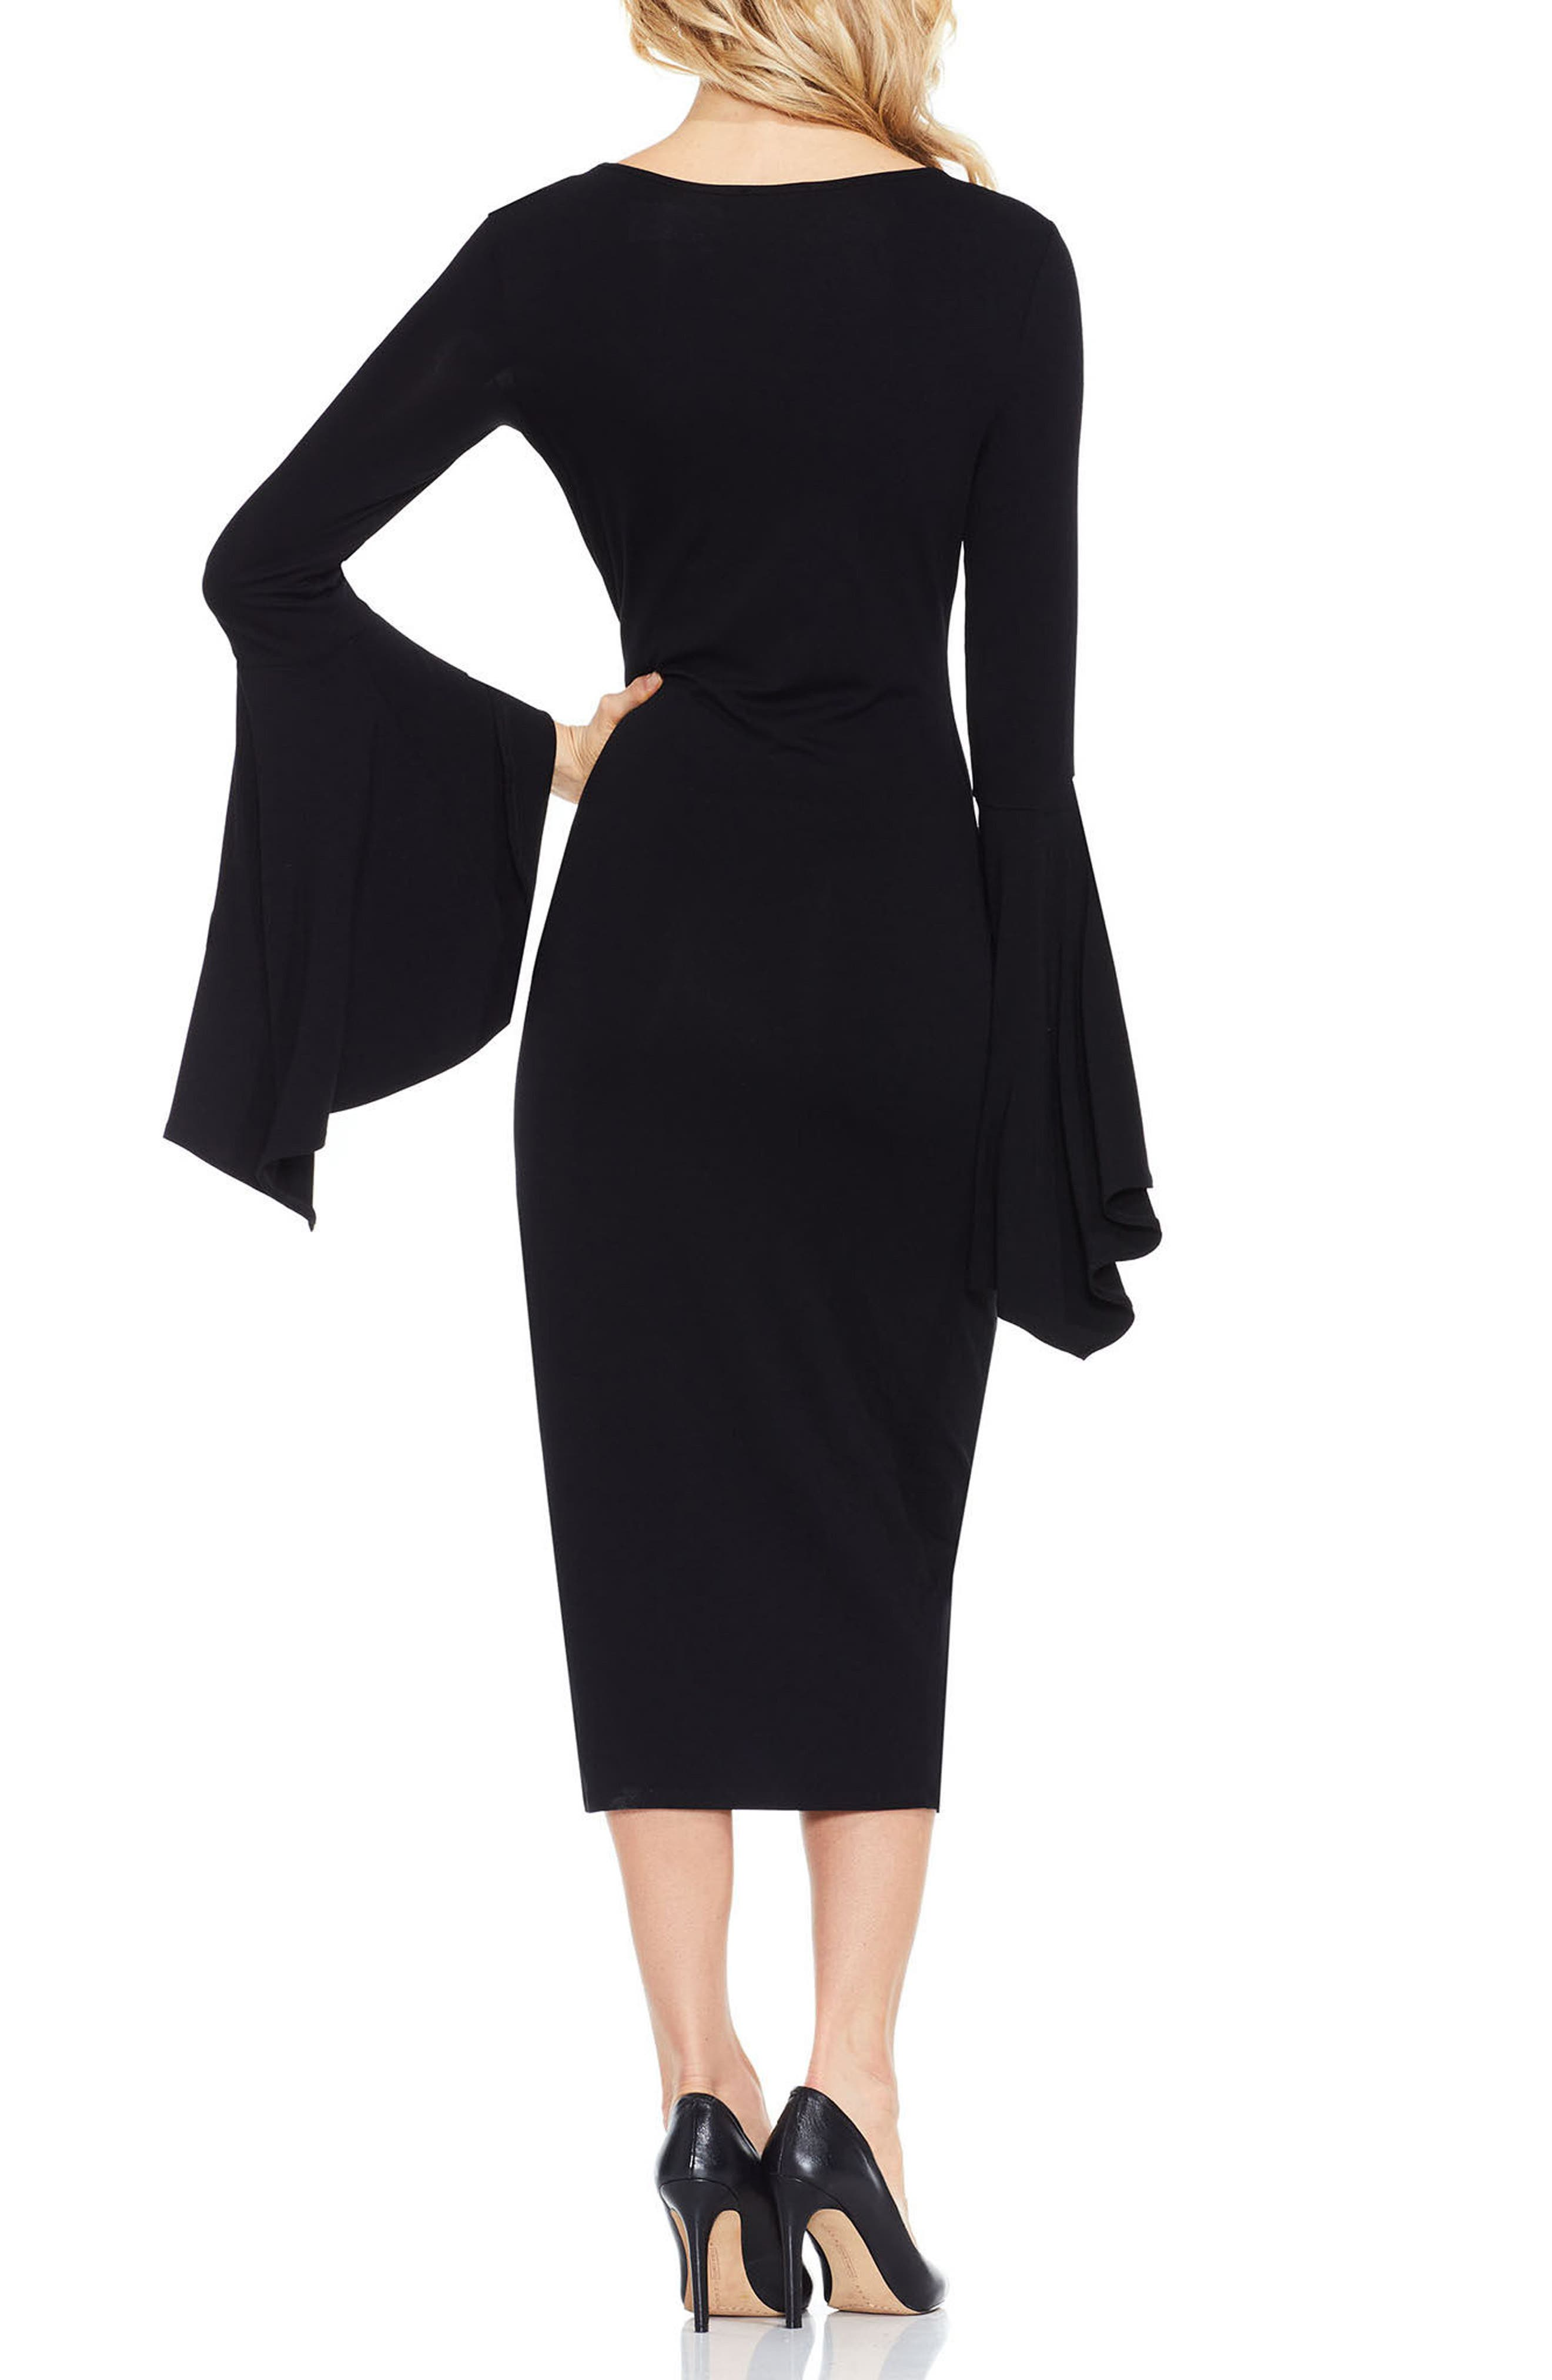 VINCE CAMUTO,                             Bell Sleeve Midi Dress,                             Alternate thumbnail 2, color,                             006